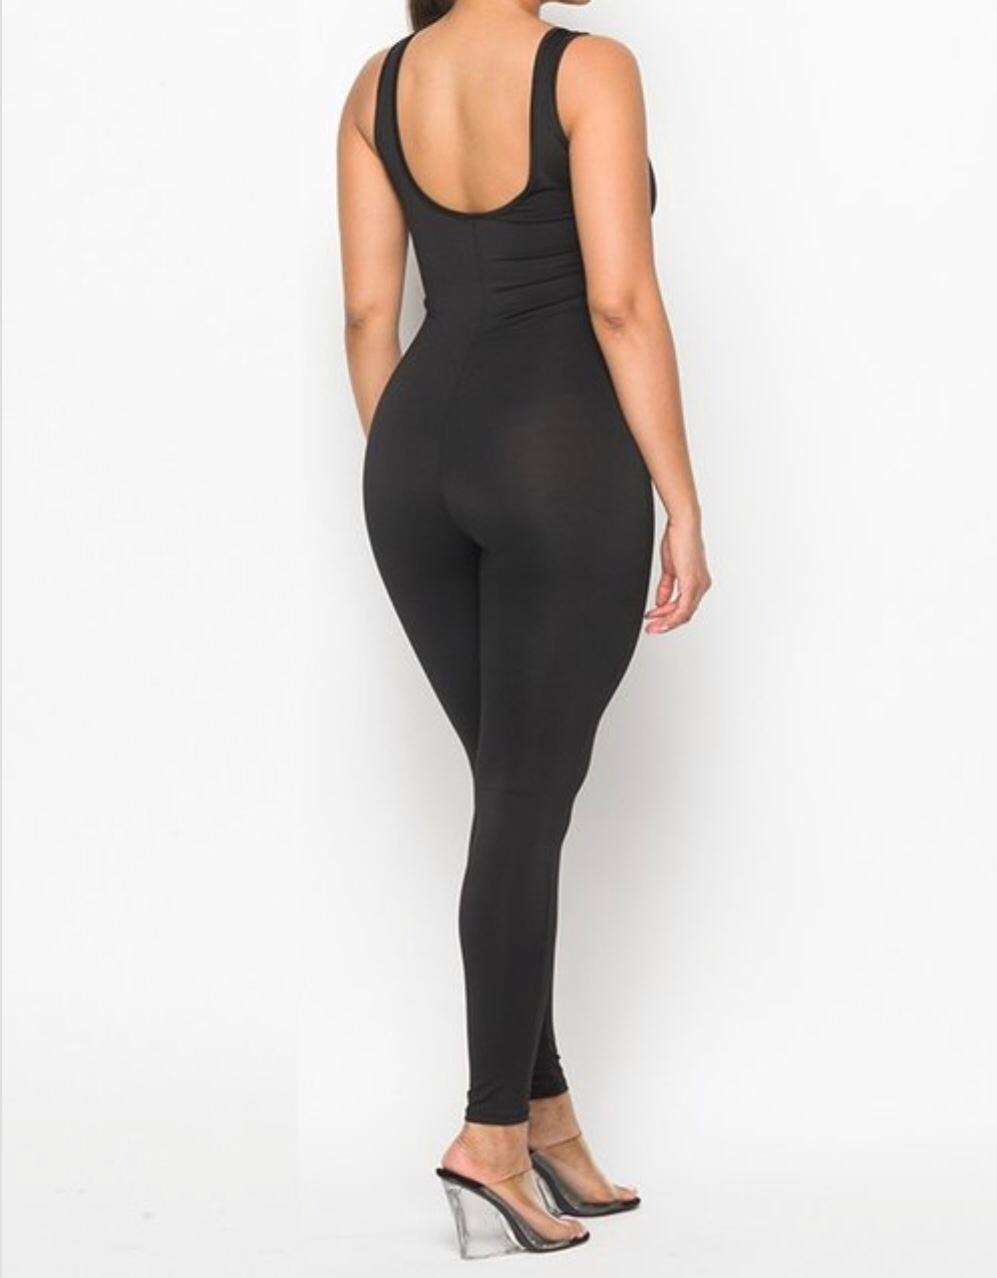 Yoga Body Suit